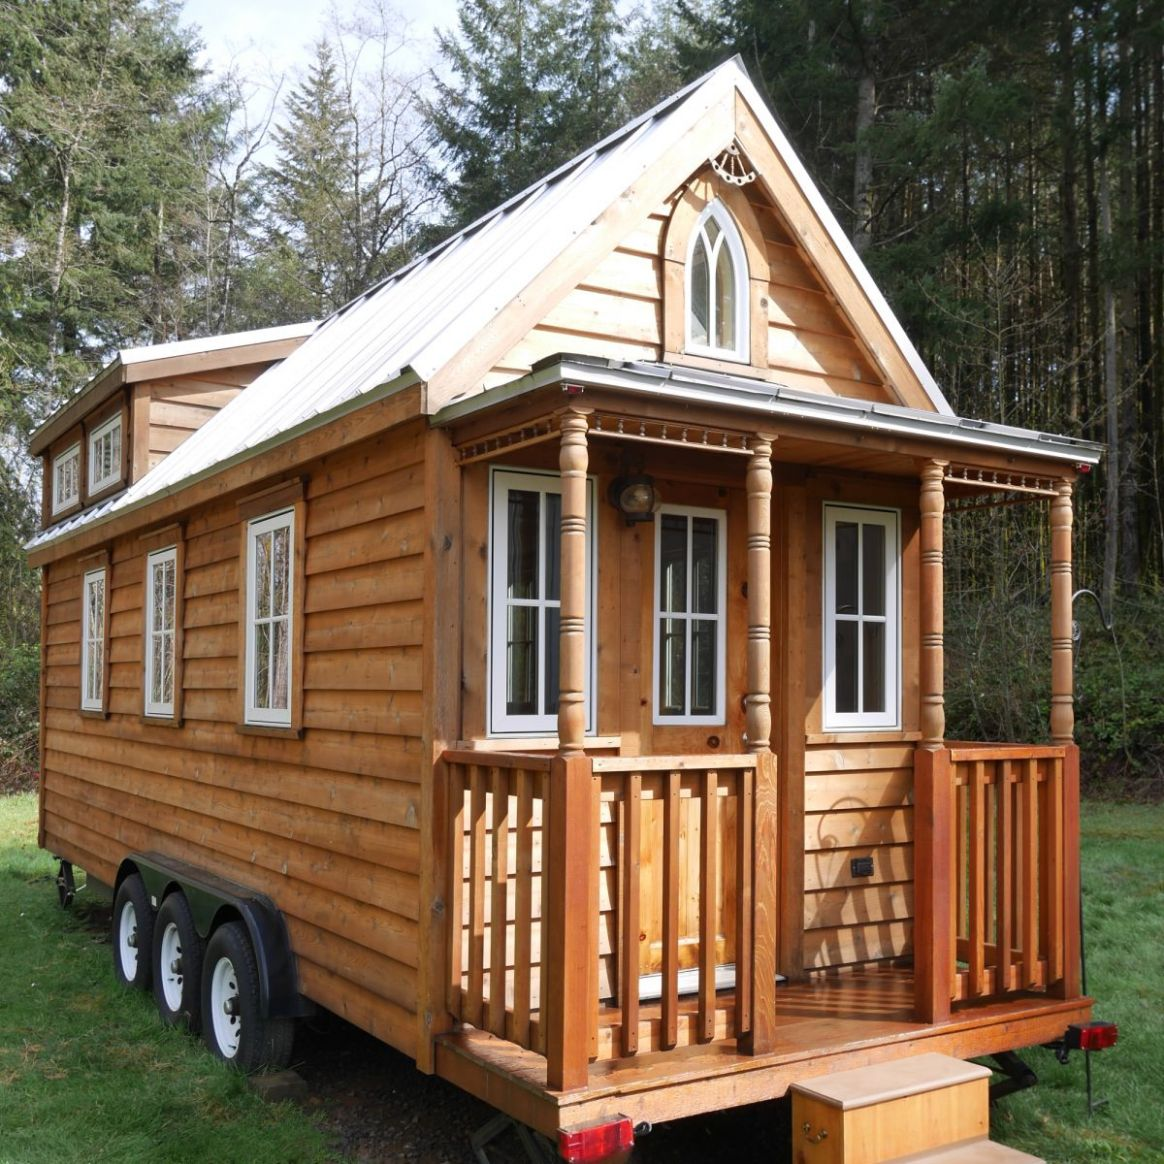 Charming Tumbleweed Tiny House on Wheels with 11 sleeping lofts! - Tiny  House Trailer for Sale in Kelso, Washington - Tiny House Listings